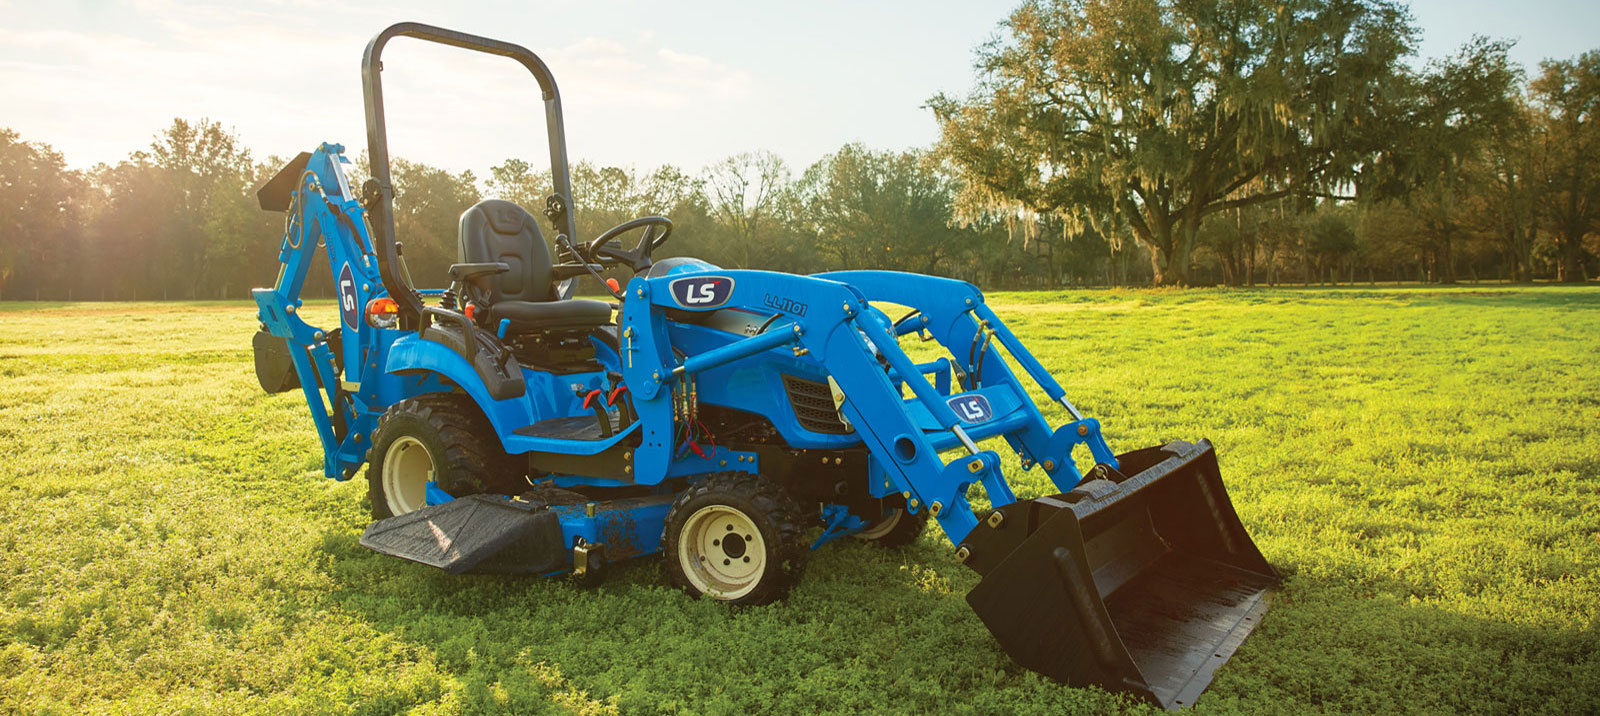 Blue LS Tractor For Sale